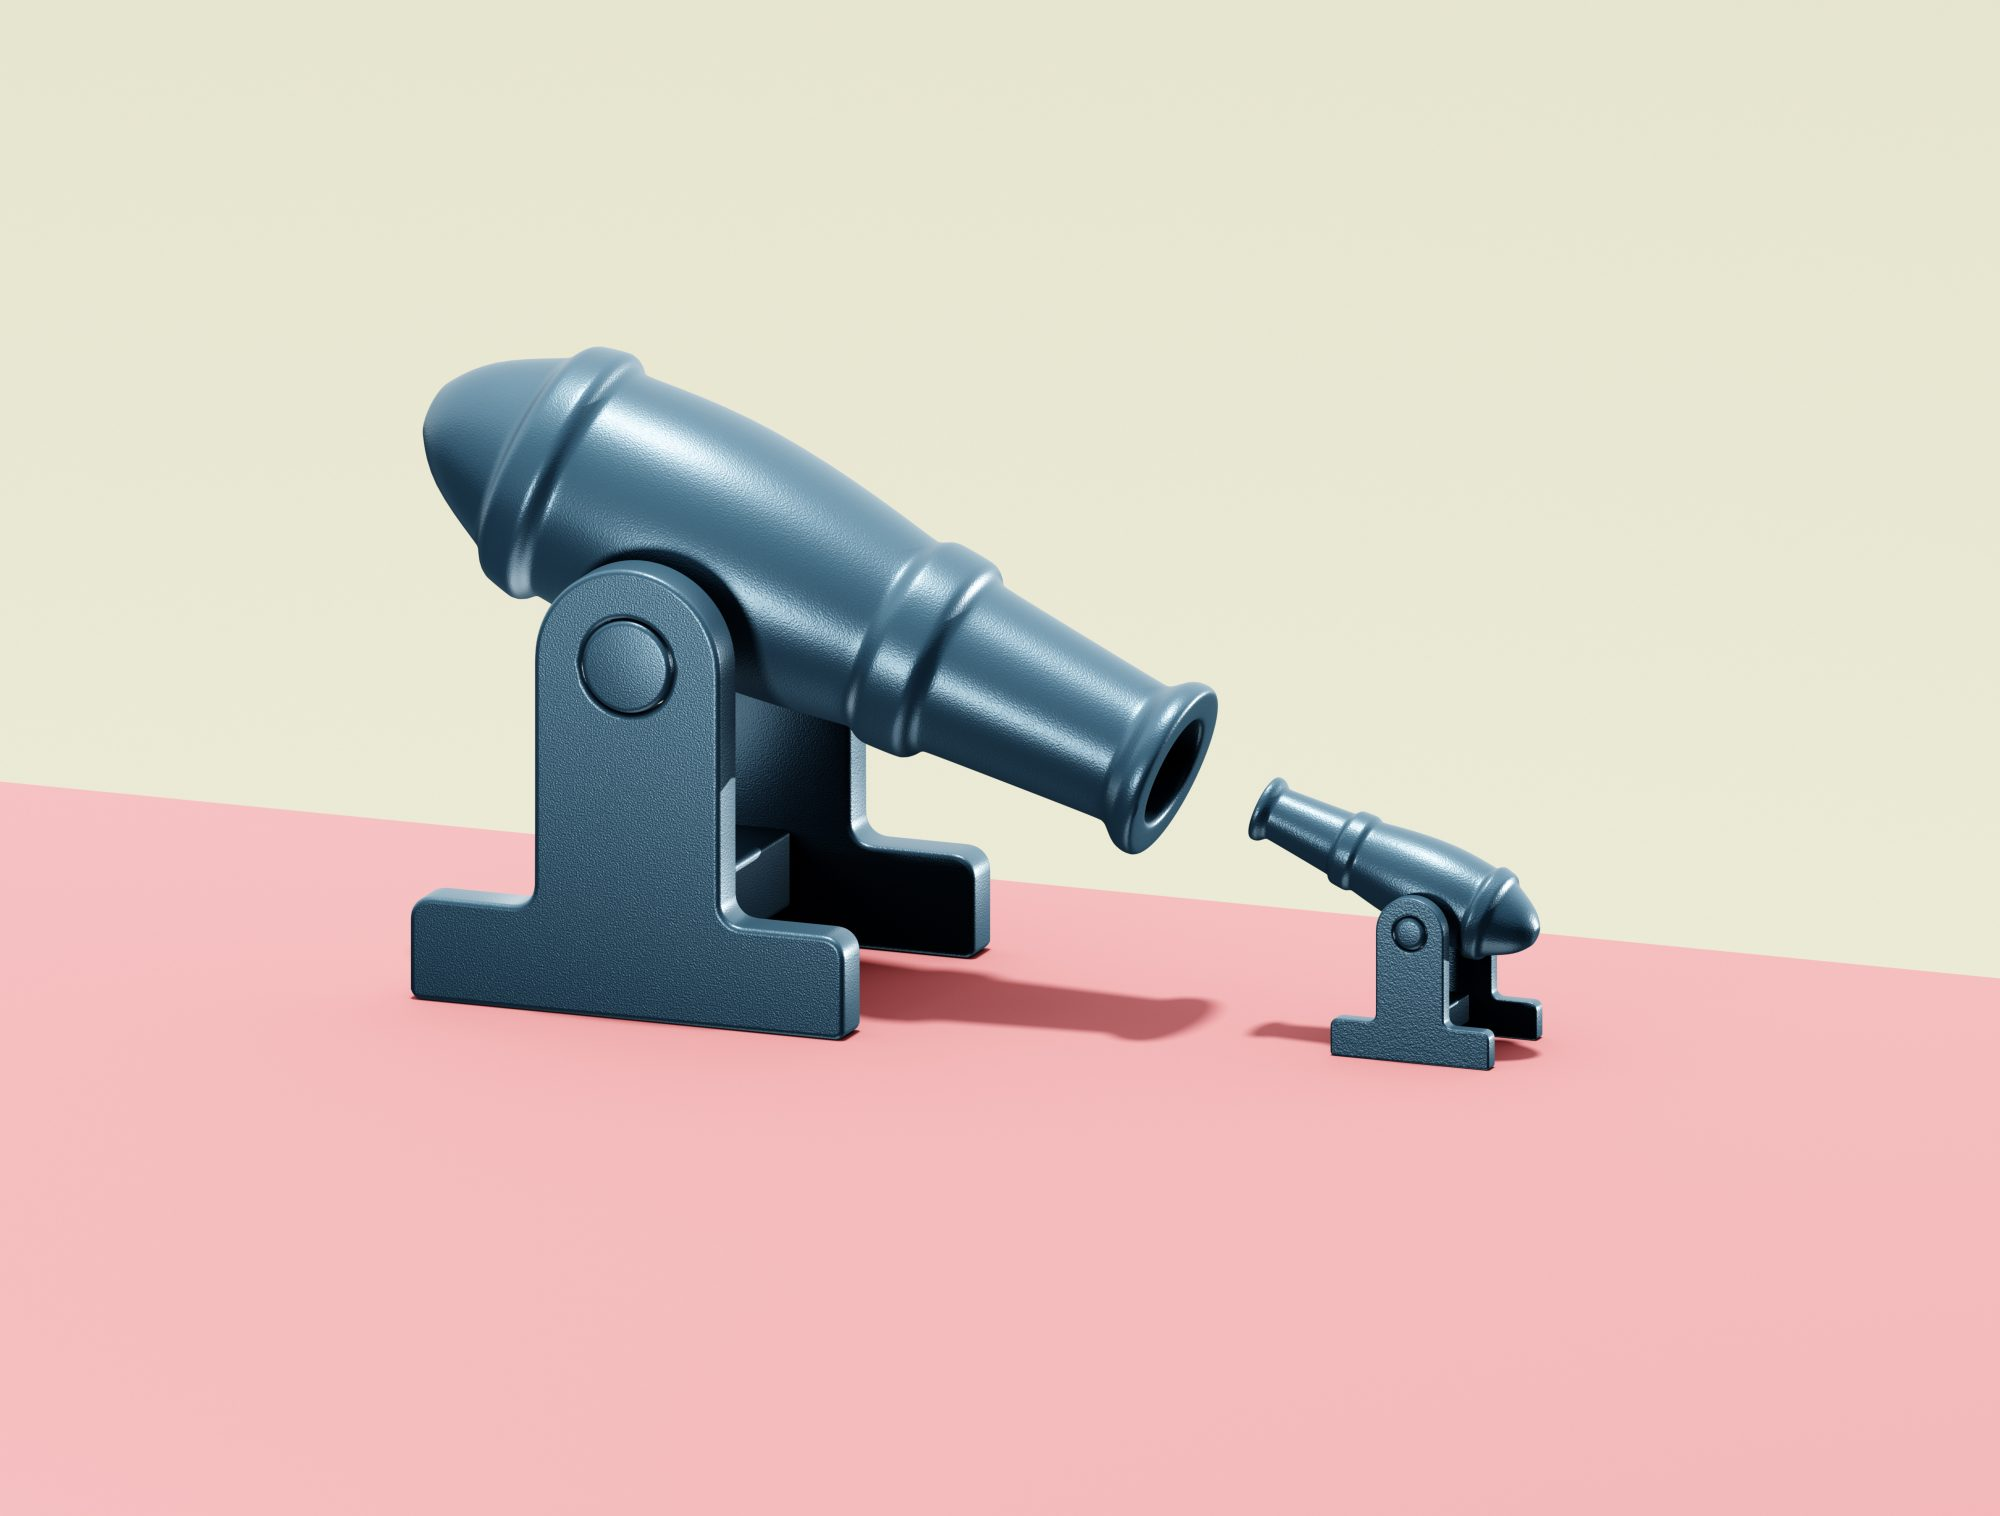 11 Signs of a Toxic Relationship: digitally generated image of two cannons facing each other